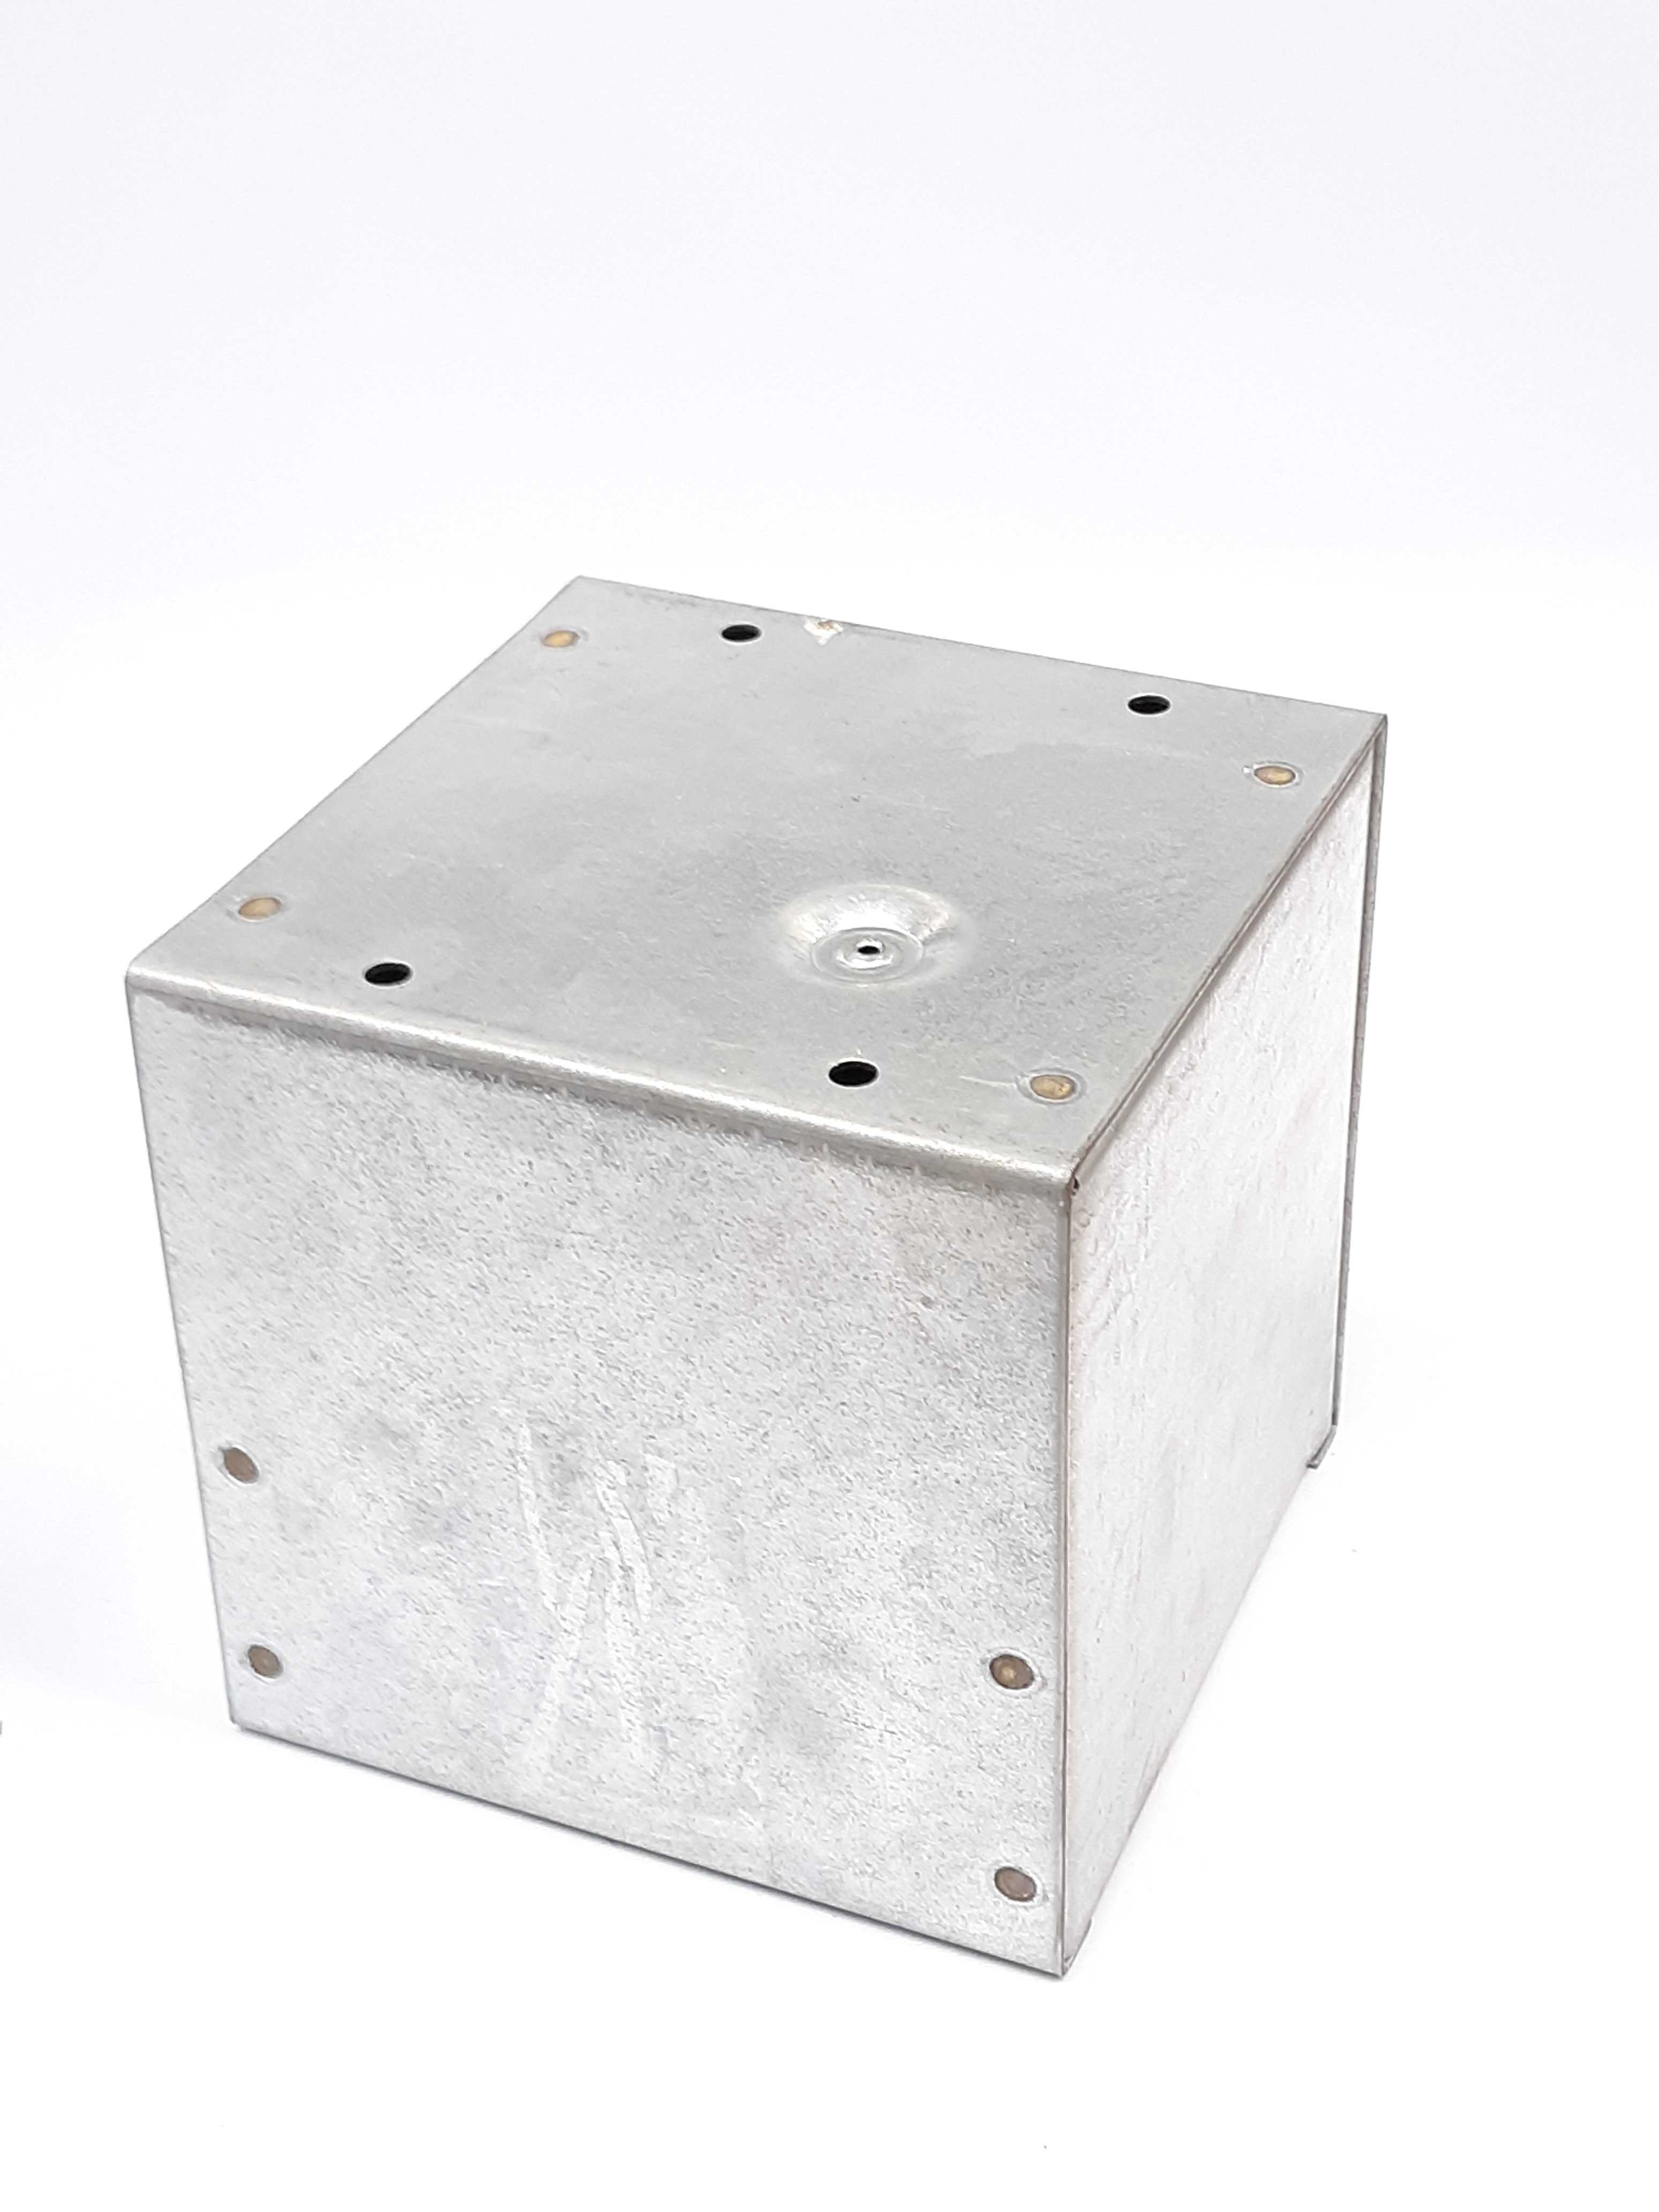 Hoffman ASG6X6X6NK Junction Pull Box, Screw Cover, Galvanized Steel